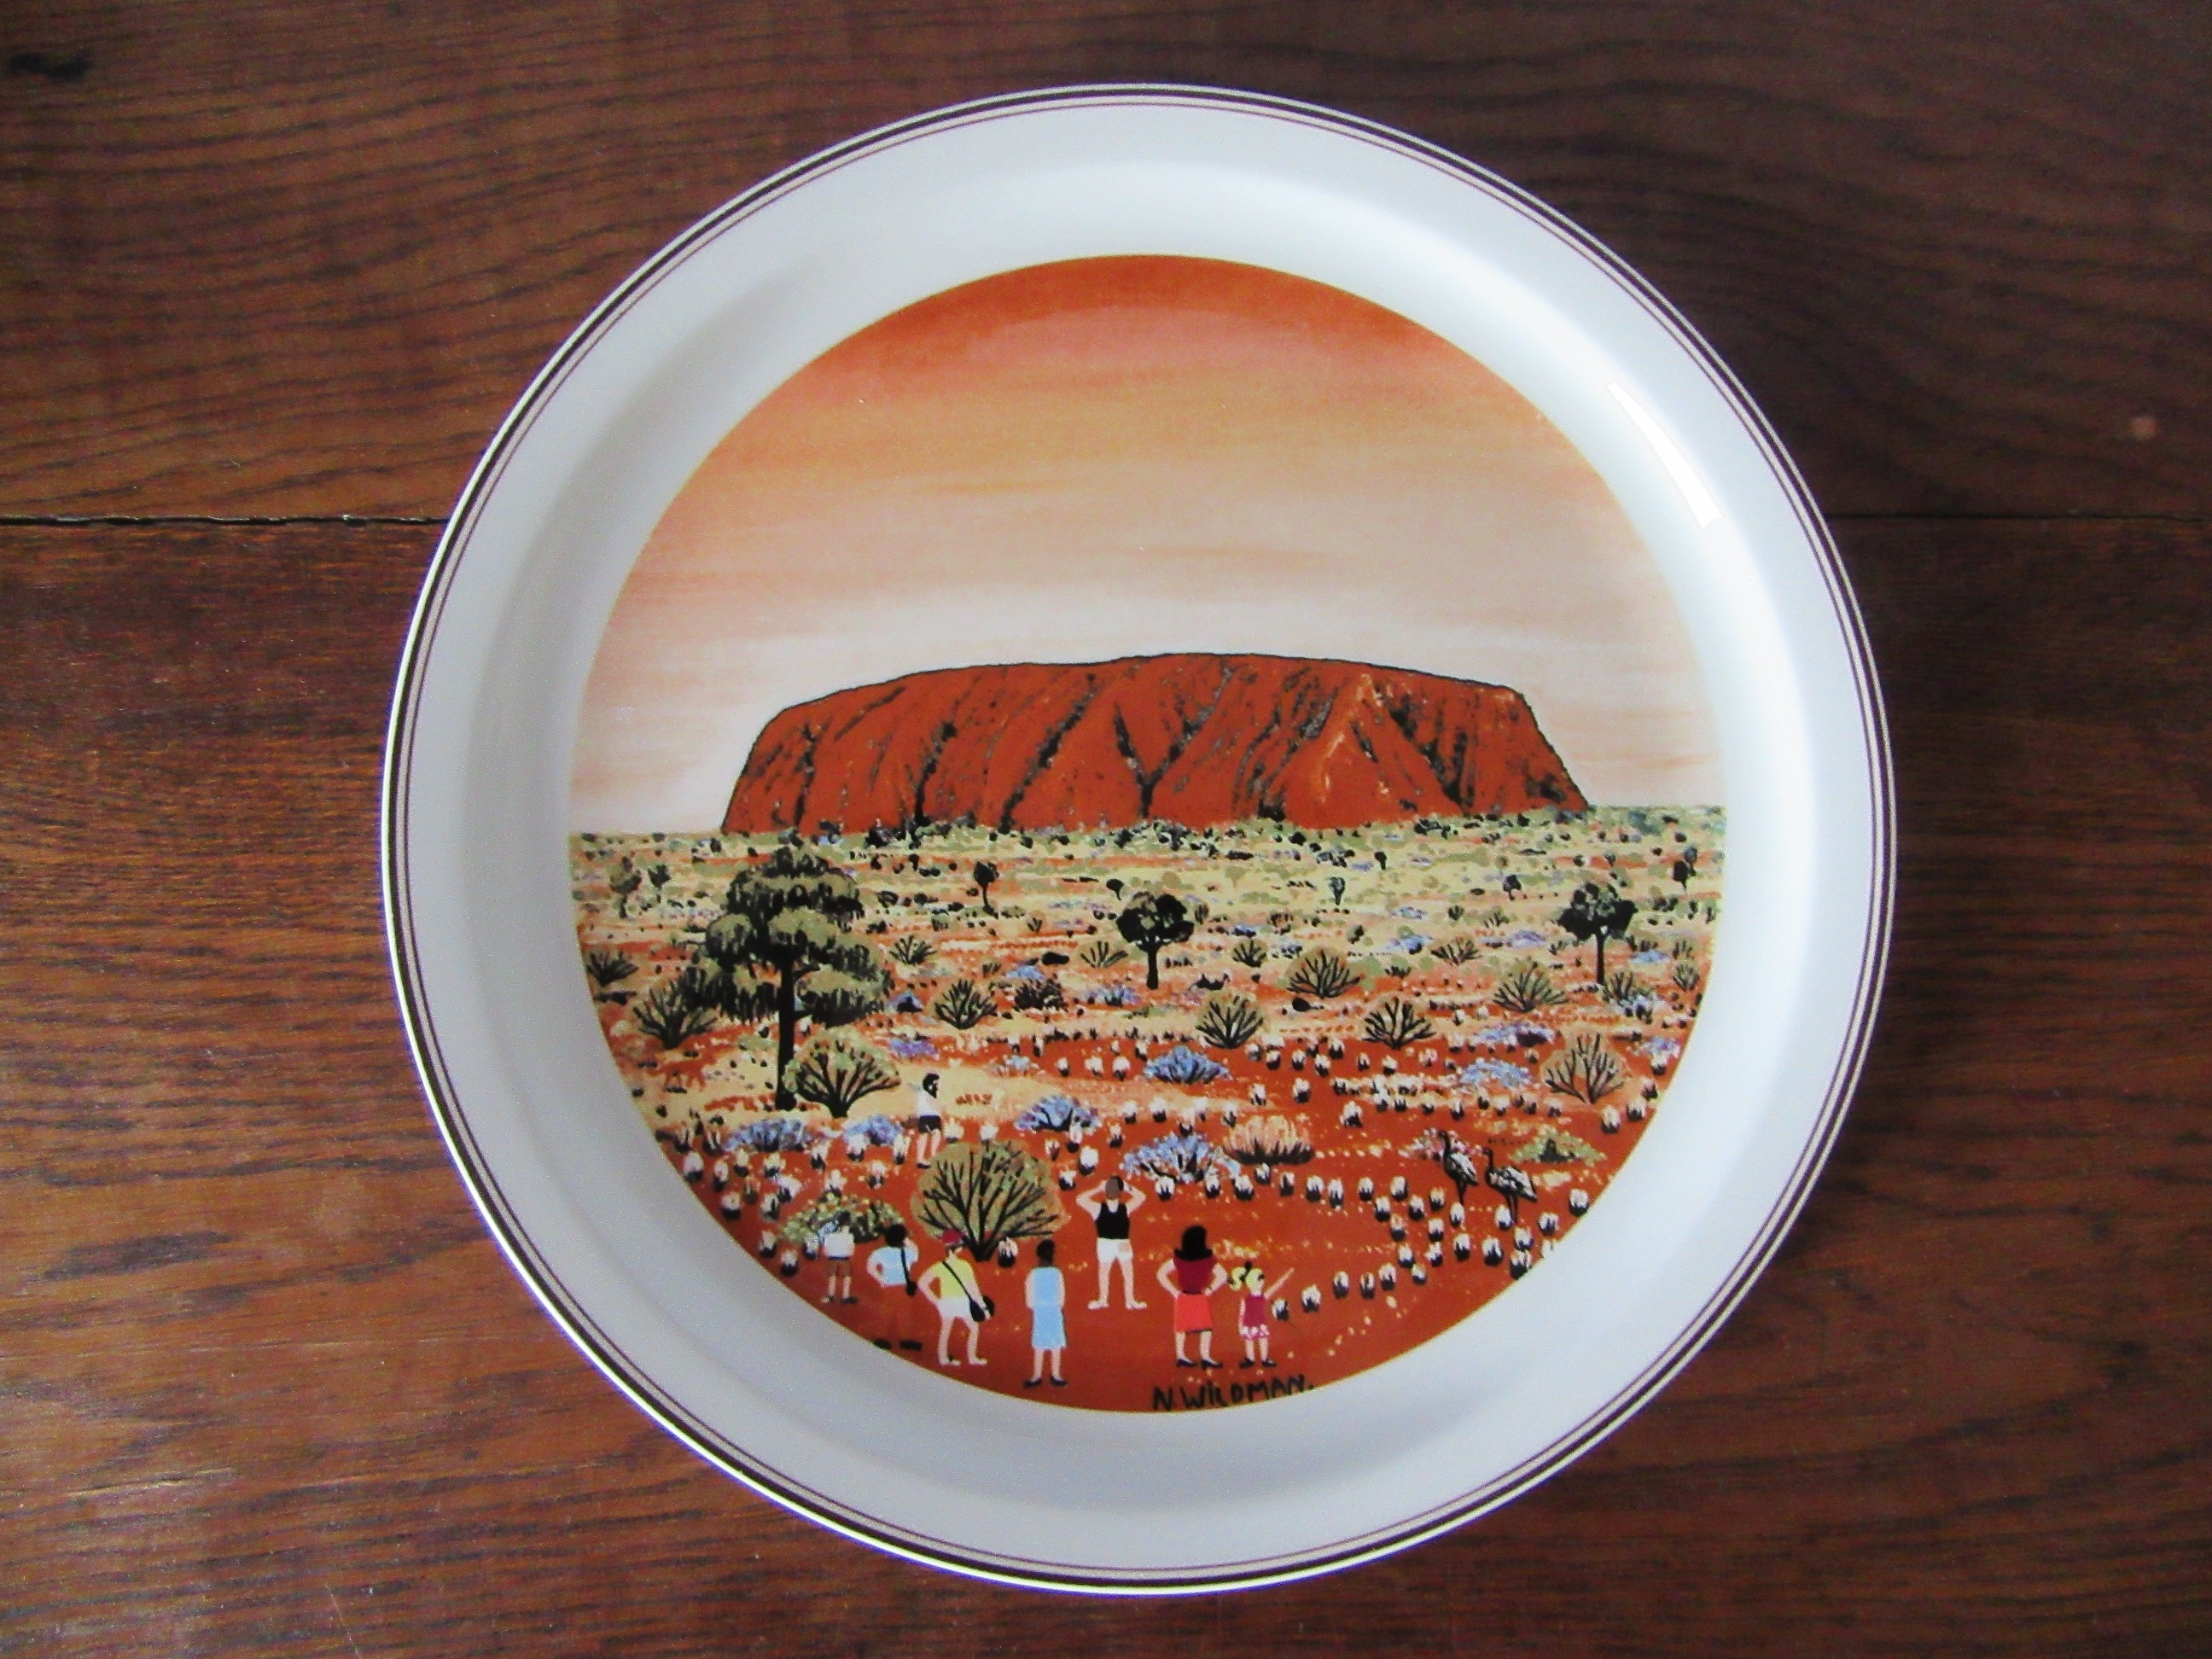 Villeroy And Boch Villeroy Boch Ayers Rock Narelle Wildman Collectors Plate